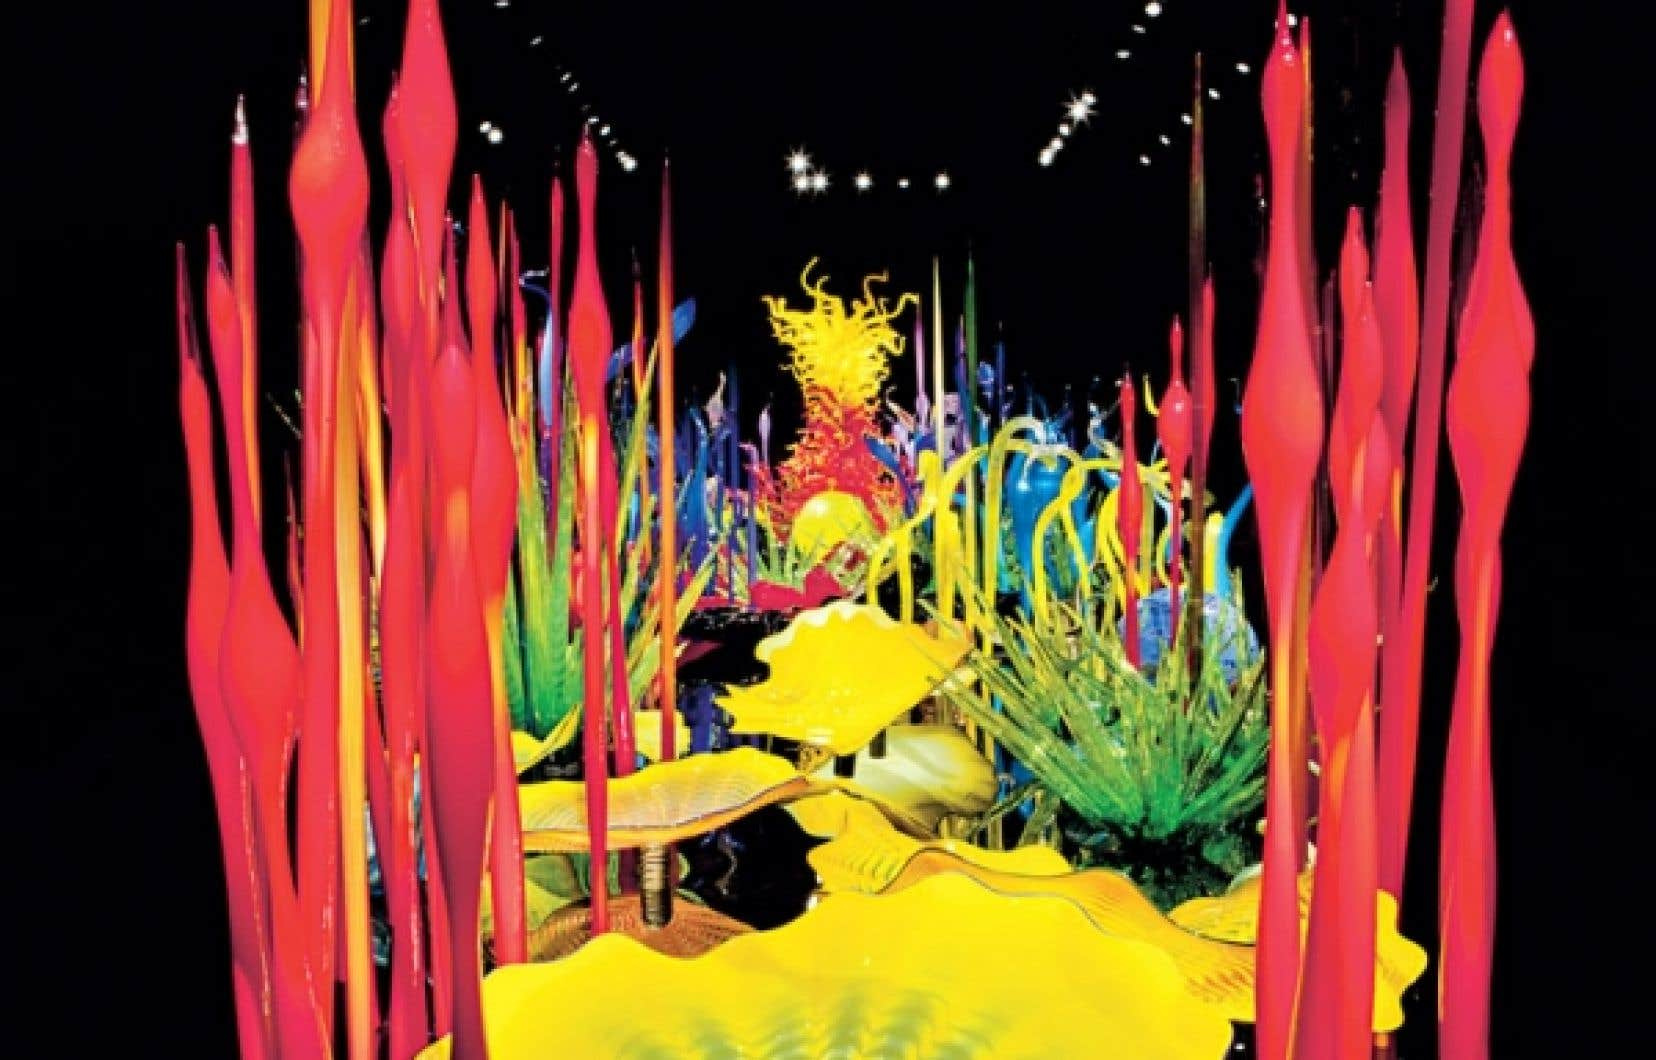 <div> Mille Fiori (d&eacute;tail), de Dale Chihuly, (Chihuly Garden and Glass, Seattle, Washington, 2012,&nbsp;58 x 20 pieds)</div>